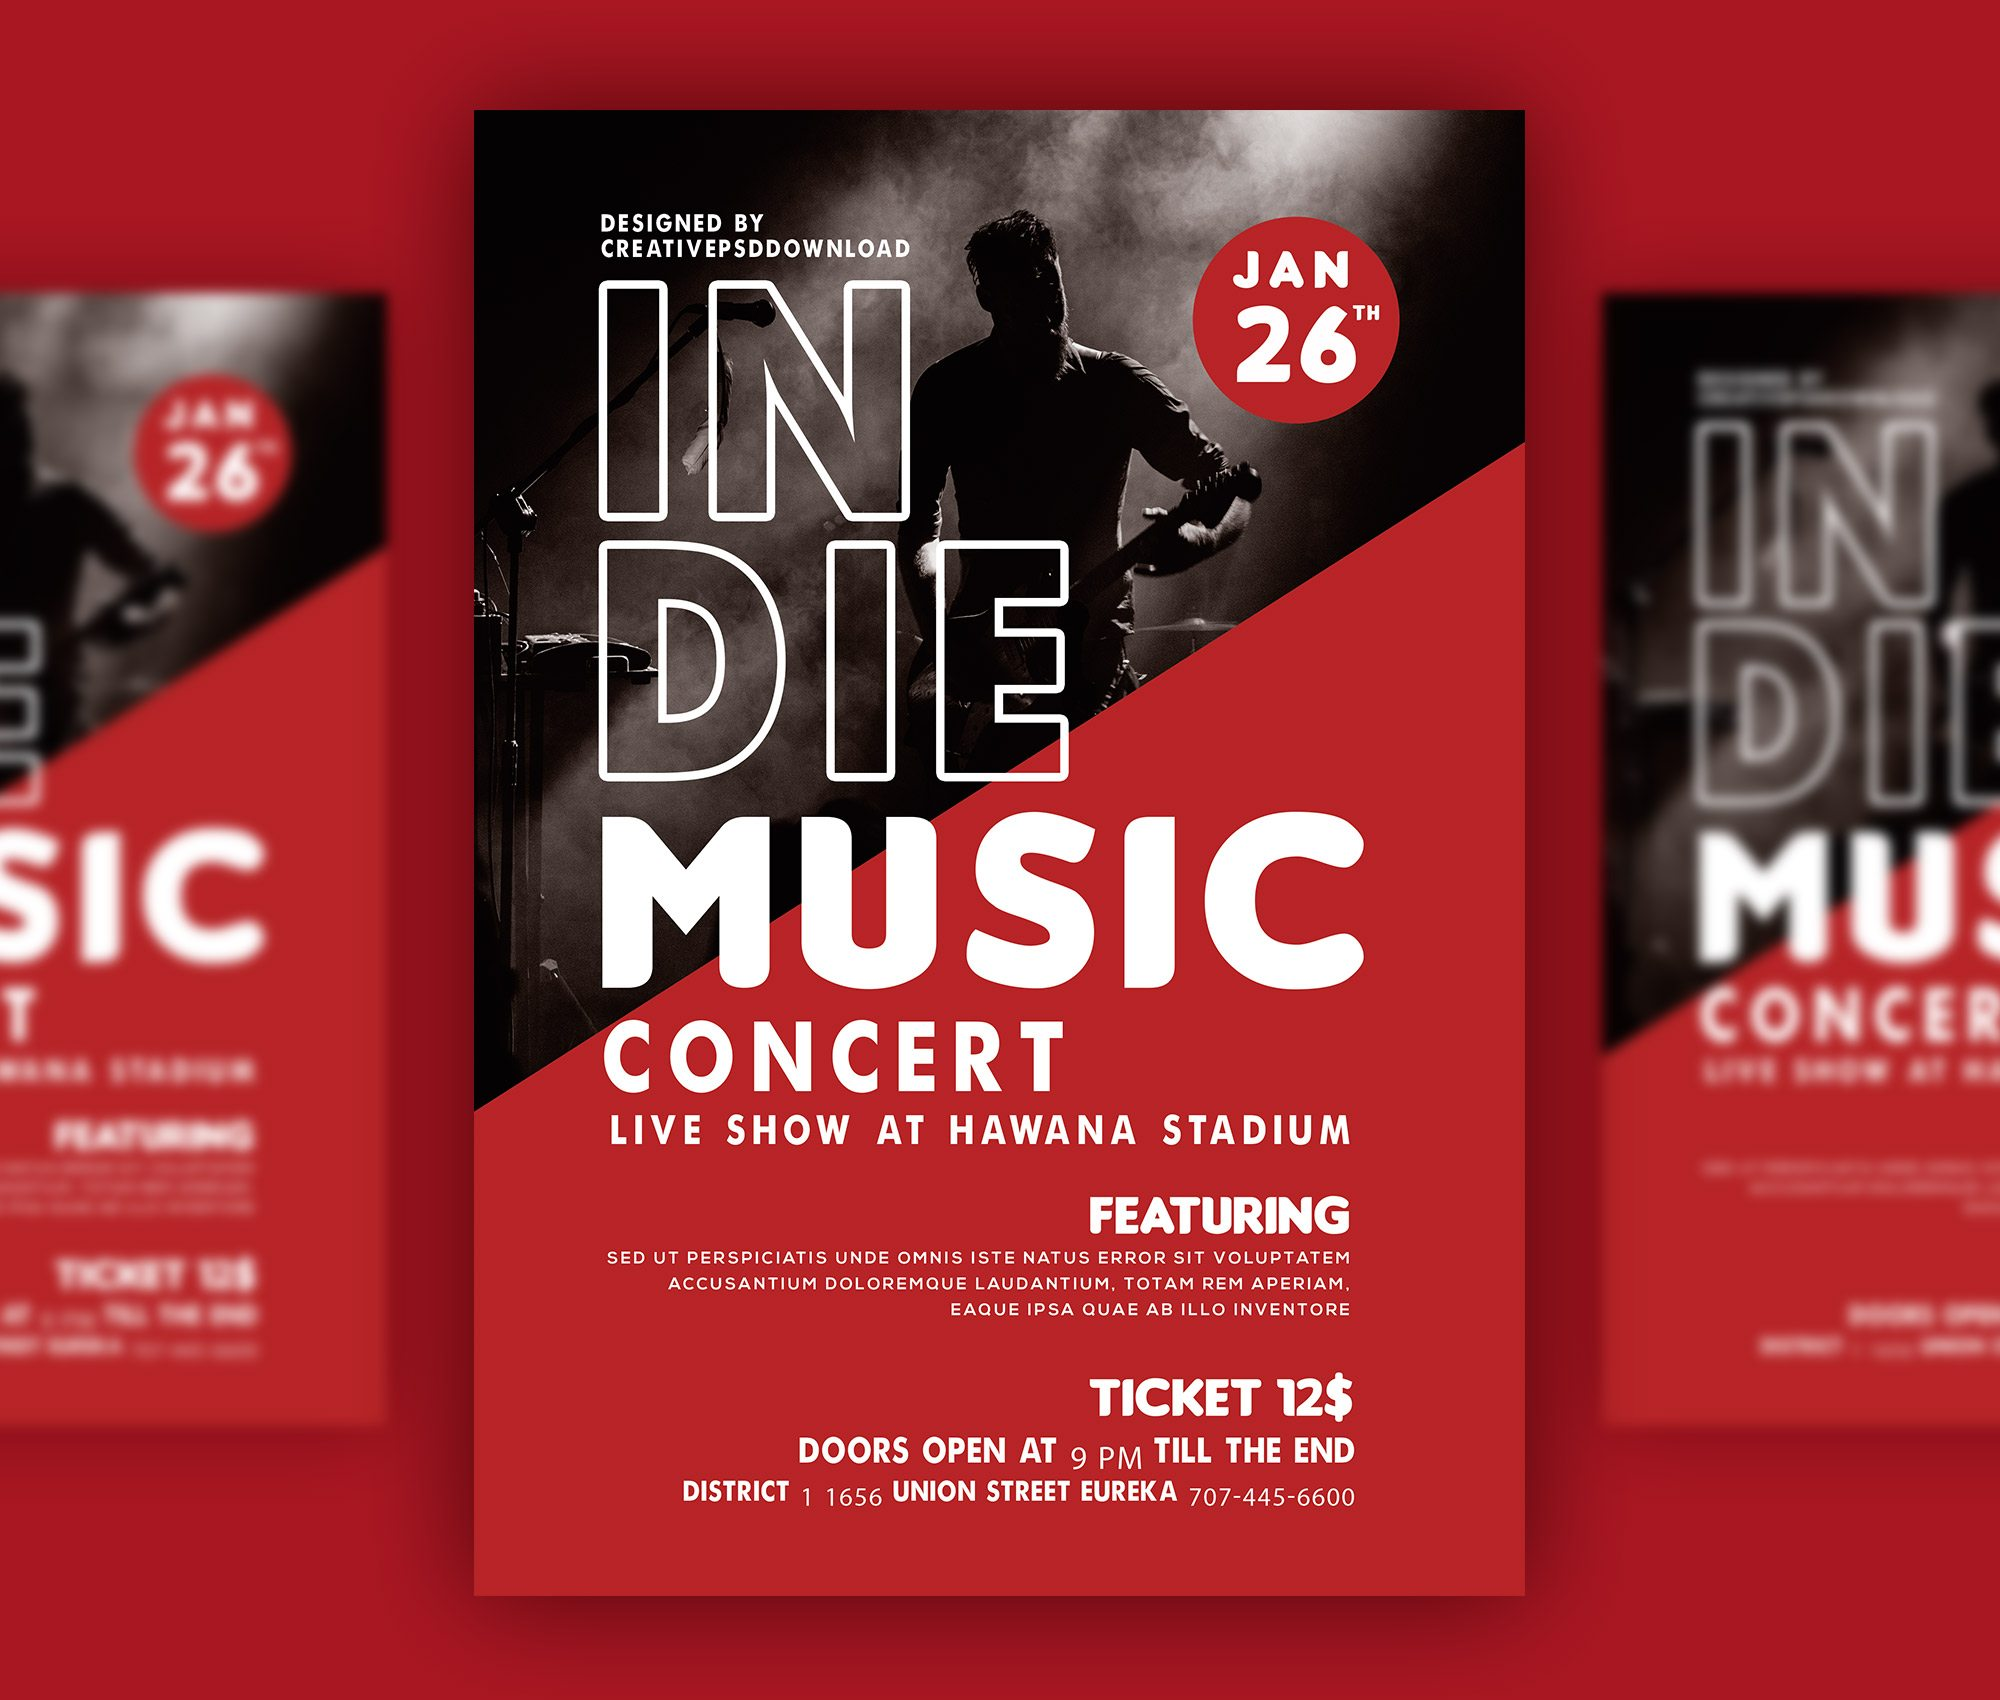 free concert flyer templates word,concert flyer template free,free concert poster template photoshop,music flyer templates,vintage concert poster template,gospel concert flyer template free,music flyer templates free word,concert poster design,